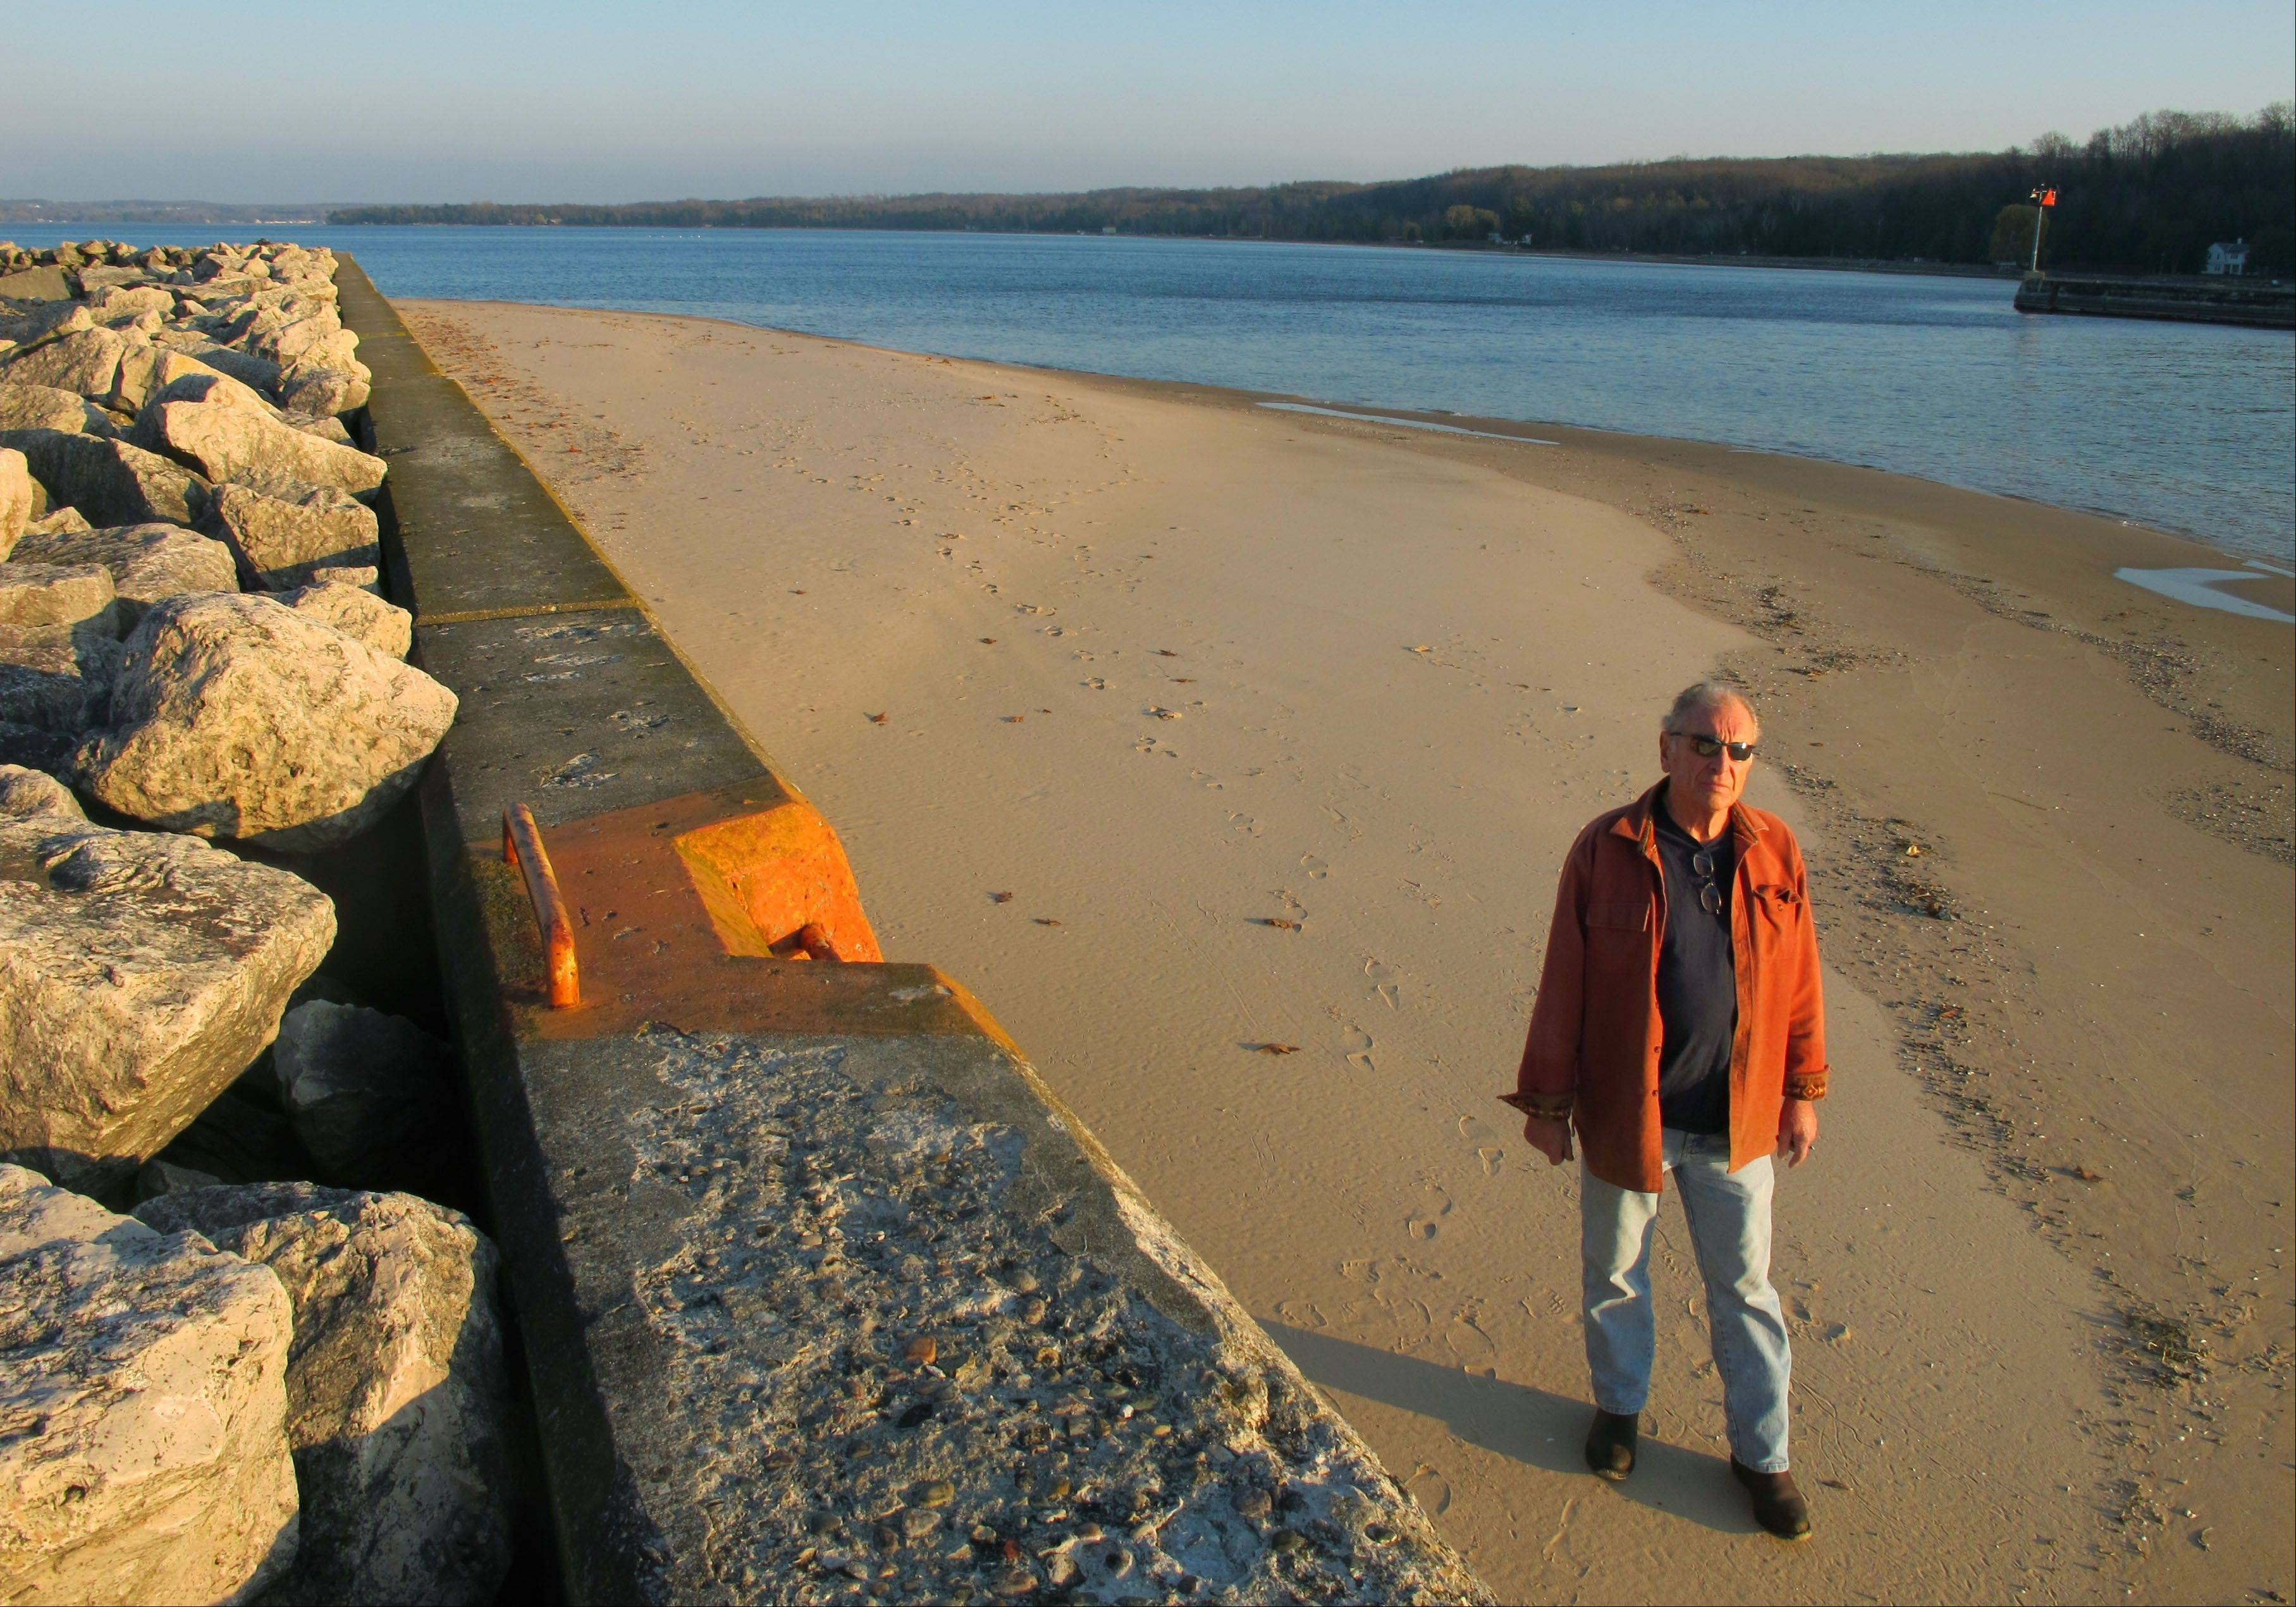 Associated Press In this Nov. 16, 2012 photo, Jim Simons walks along a sand bar, exposed by low water levels, on the Portage Lake channel that leads to Lake Michigan at Onekama, Mich. Experts say putting man-made structures in the St. Clair River as some advocates want might not boost Great Lakes levels significantly because they might not offset the effects of a warmer, drier climate.